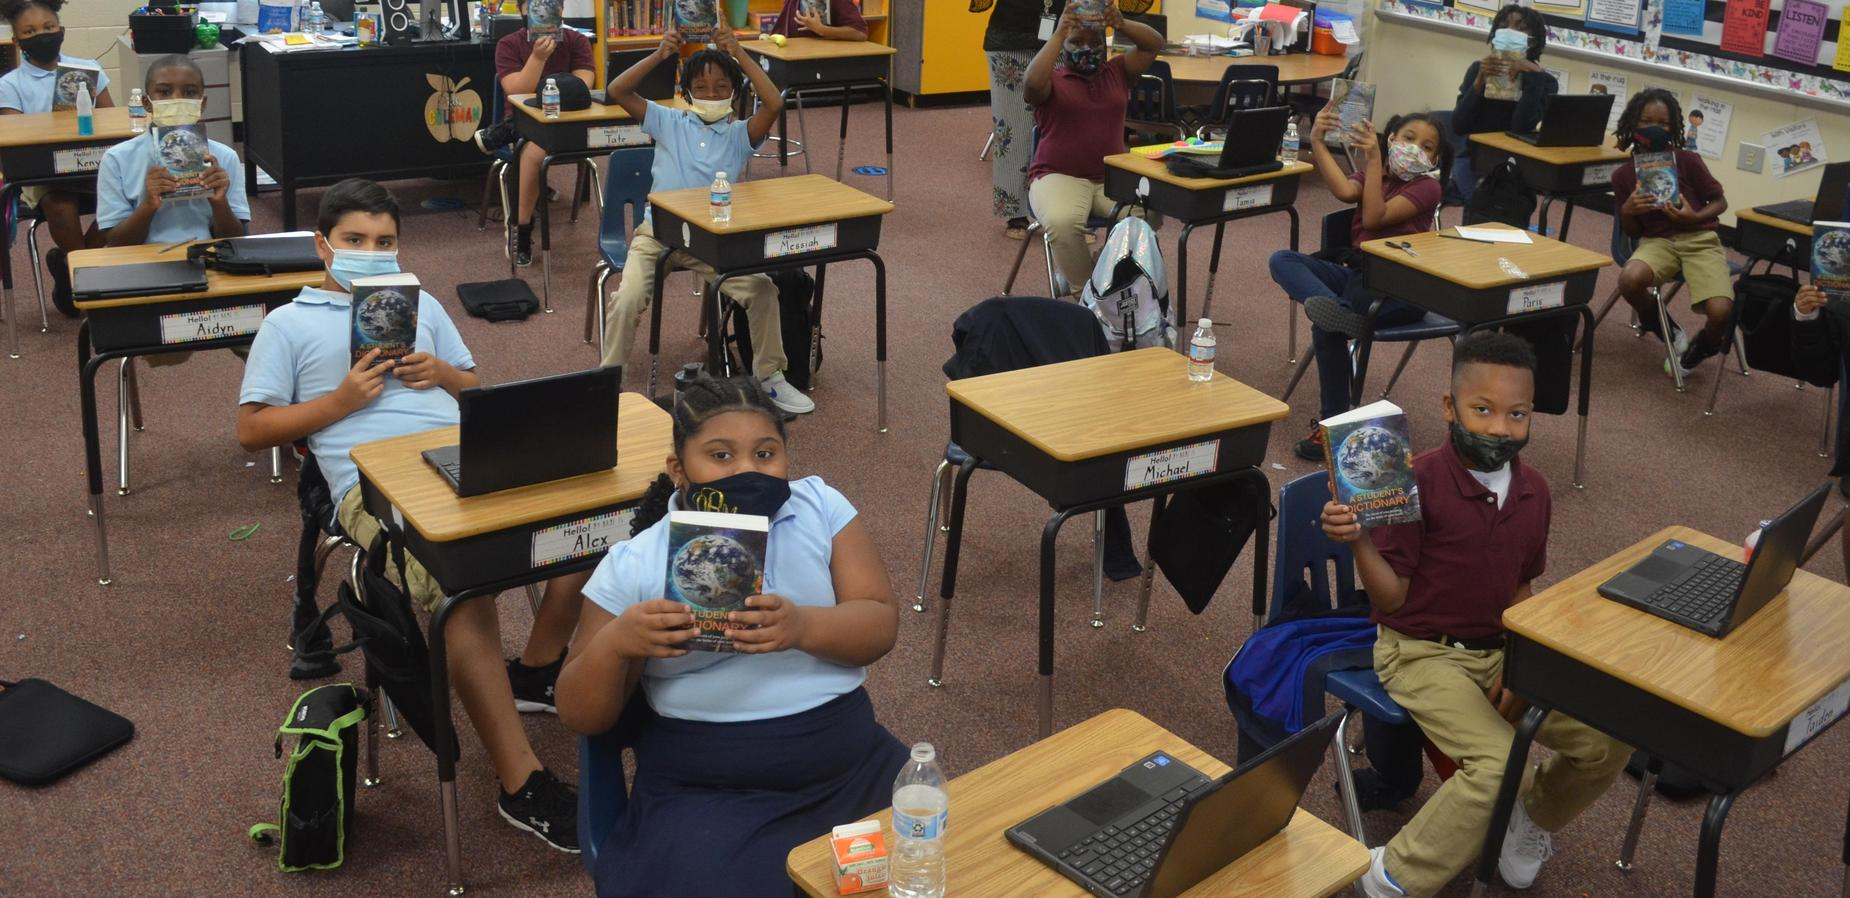 Our Third Graders are excited about the dictionaries donated by the Rotary Club!!